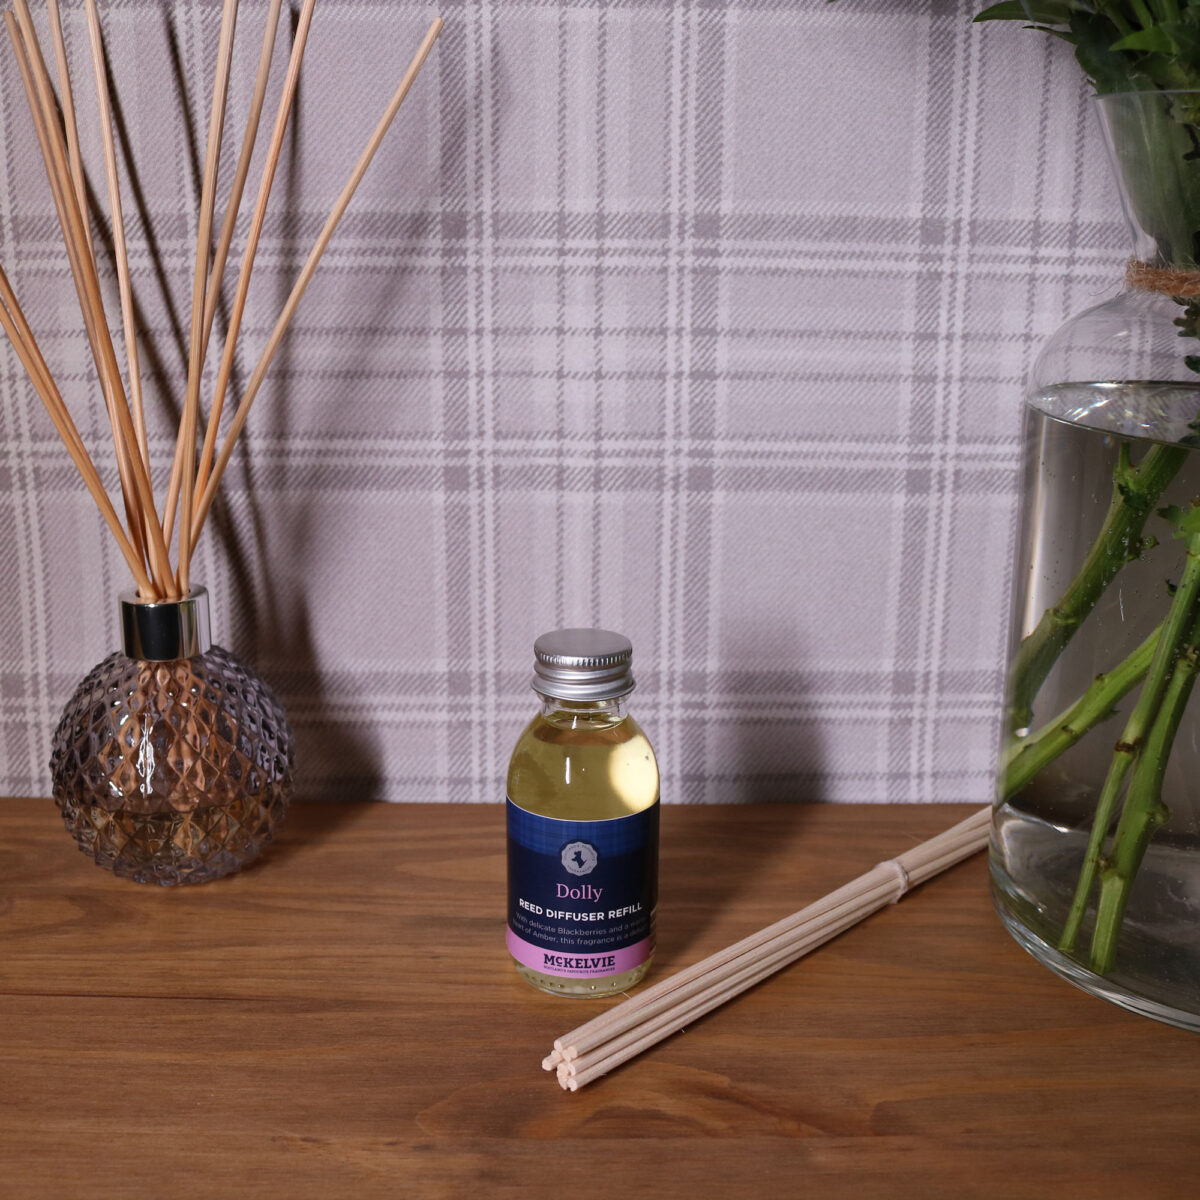 Dolly Reed Diffuser Refill